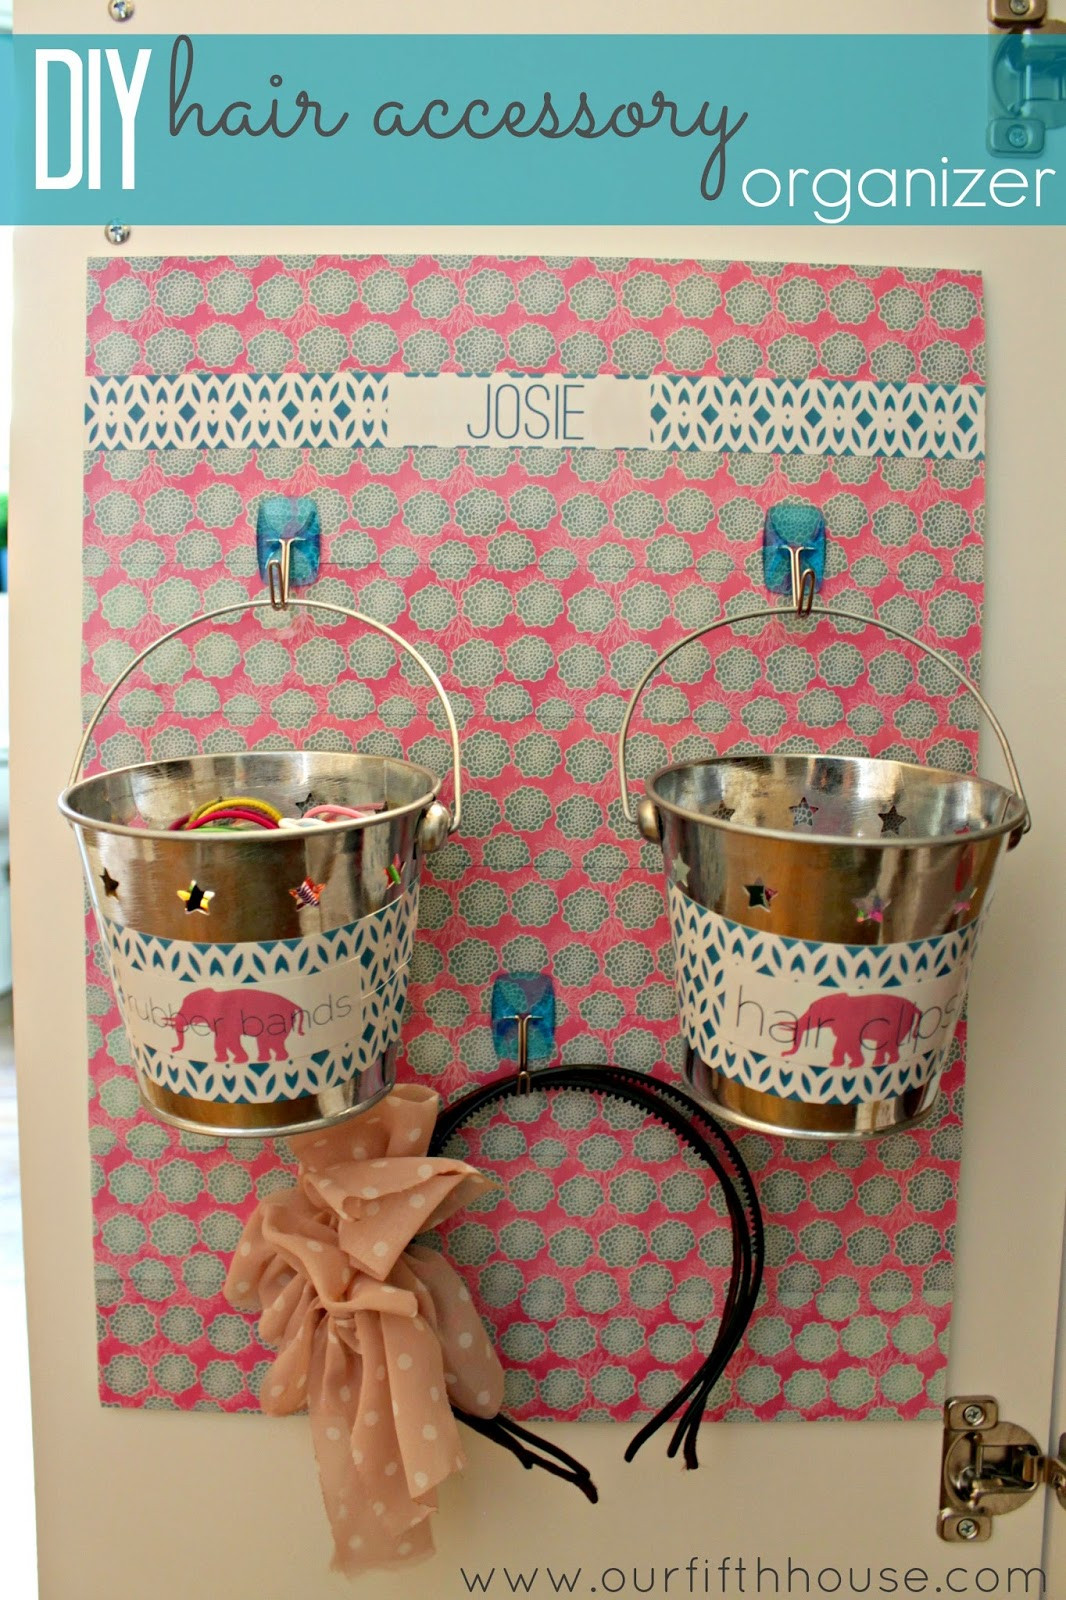 Best ideas about Hair Accessories Organizer DIY . Save or Pin Our Fifth House DIY Hair Accessory Organizer & A Lilly Now.